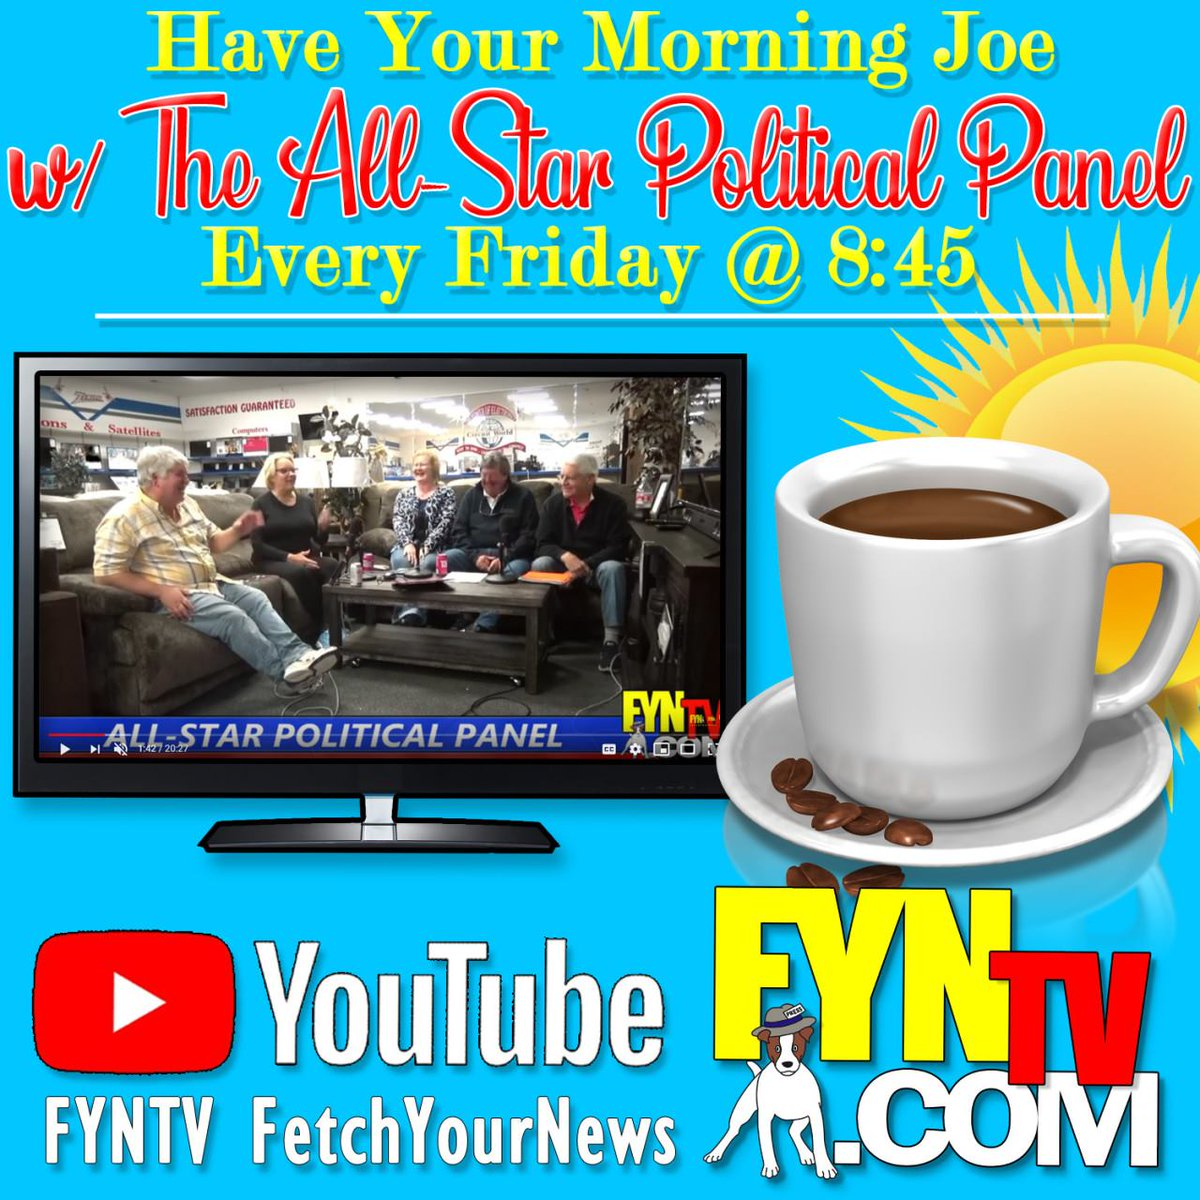 Wake up with the All-Star Political Panel! LIVE every Friday @ 8:45 a.m. on https://t.co/HPnotdnZdS. #GaPol #BKPpolitics #Politics #Part #Trumps #Government #News #LocalNews #BlueRidge #Ellijay #GaRep #GaDem #Georgia https://t.co/8Ky4zI9nIF